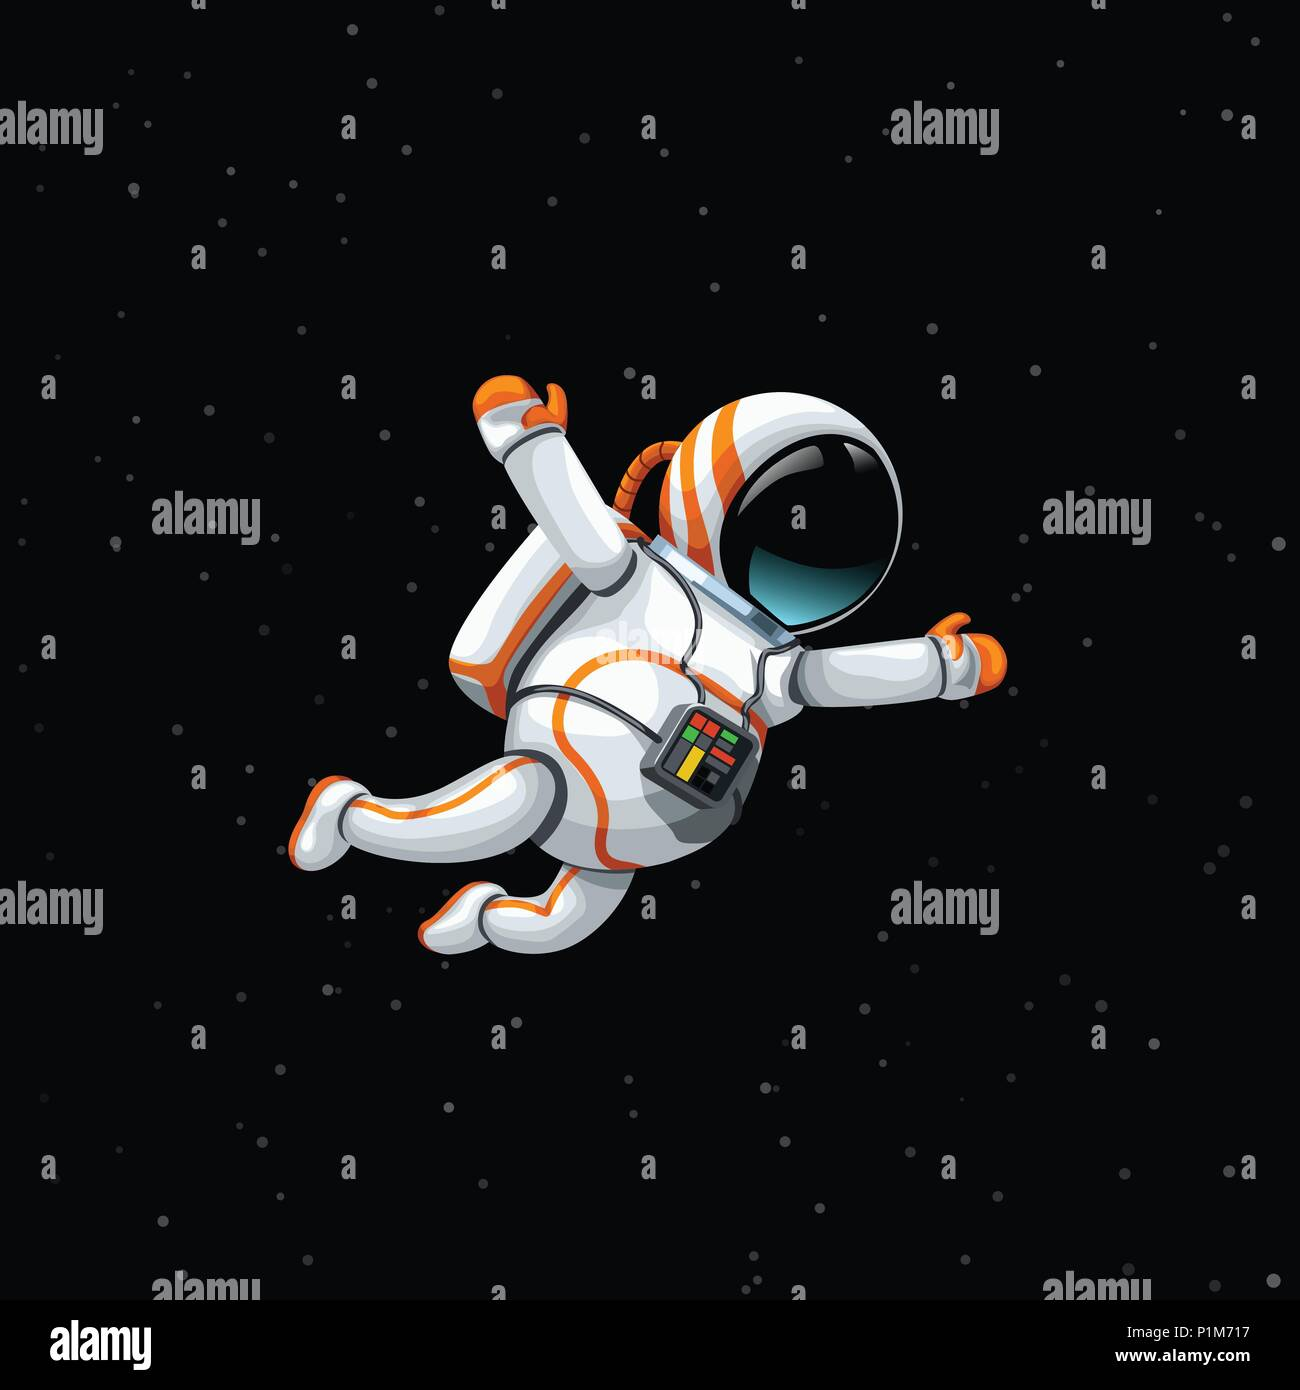 astronaut in deep space - photo #15